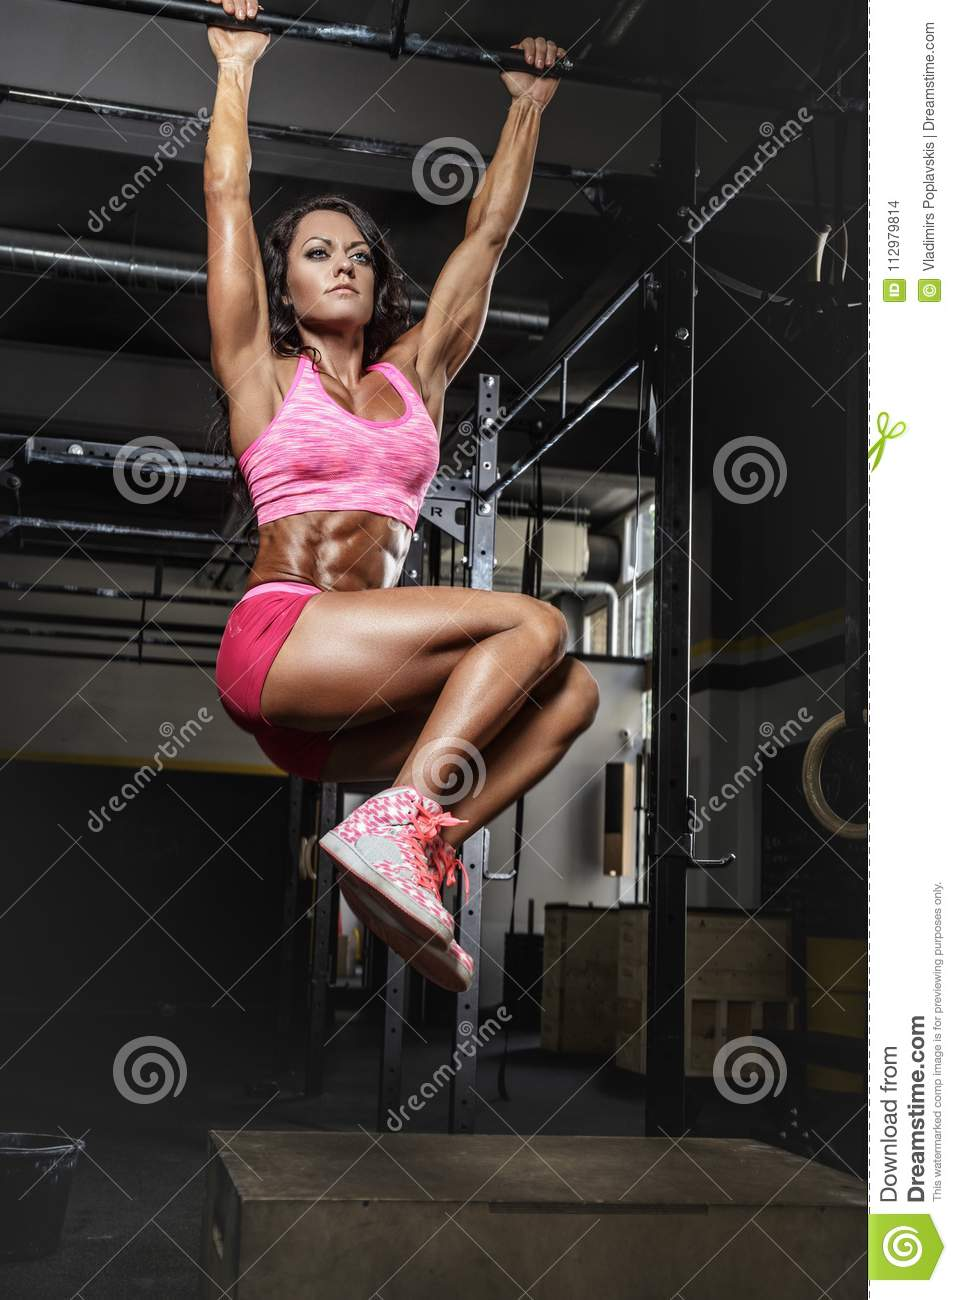 Female in pink sportswear doing exercises on horizontal bar.